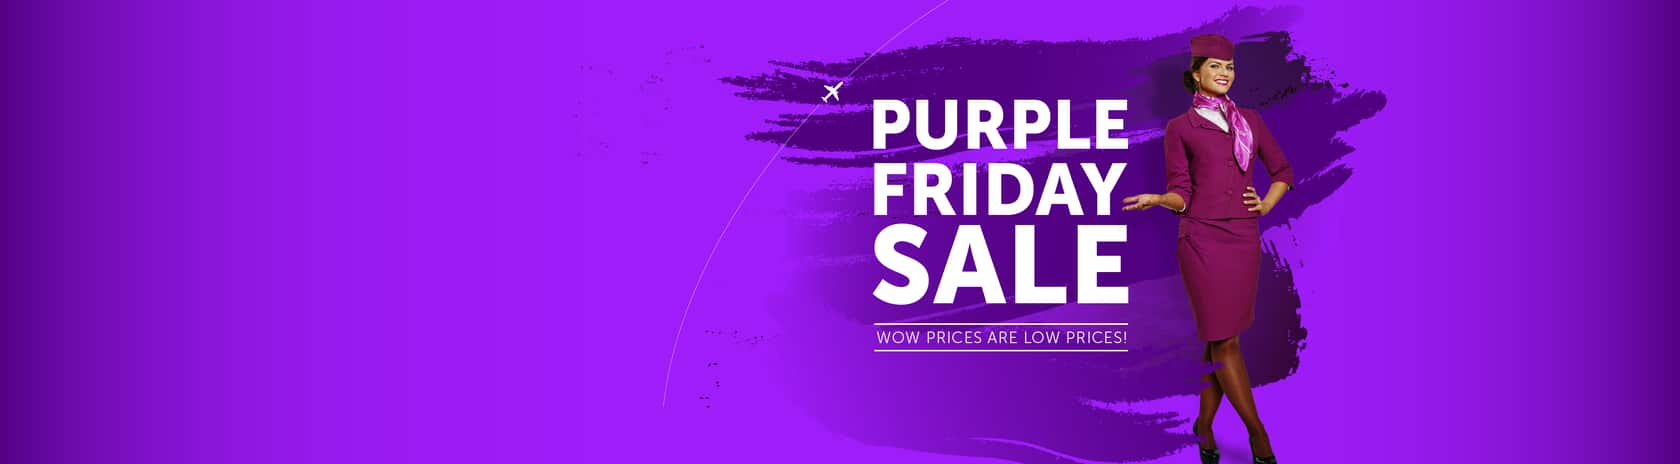 WOW Air Purple Friday $99 OW Airfares To Europe